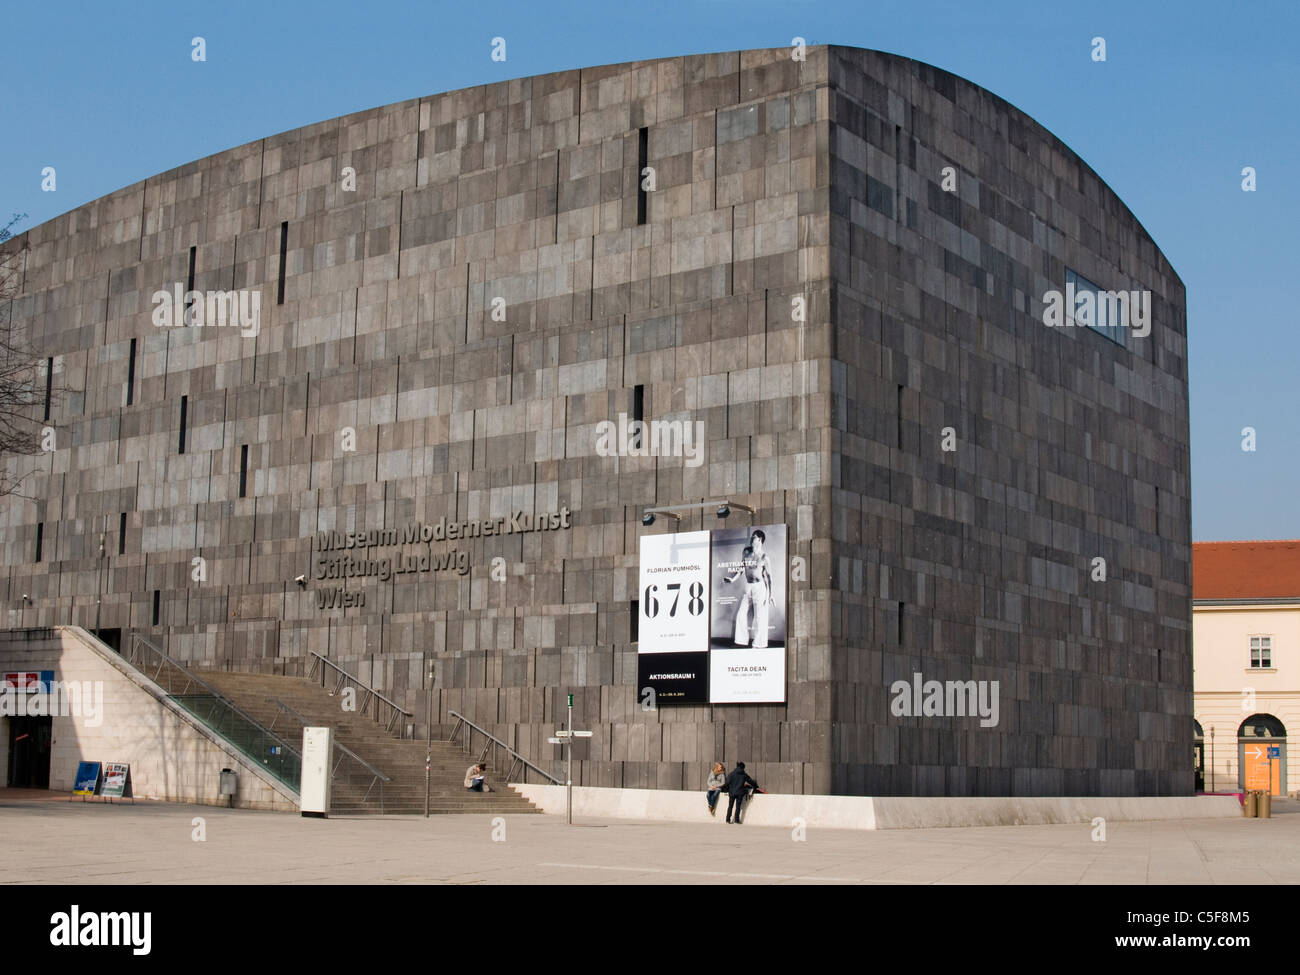 Building of MUMOK (Museum Moderner Kunst or Museum of Modern Art) at MuseumsQuartier in Vienna (Wien), Austria - Stock Image